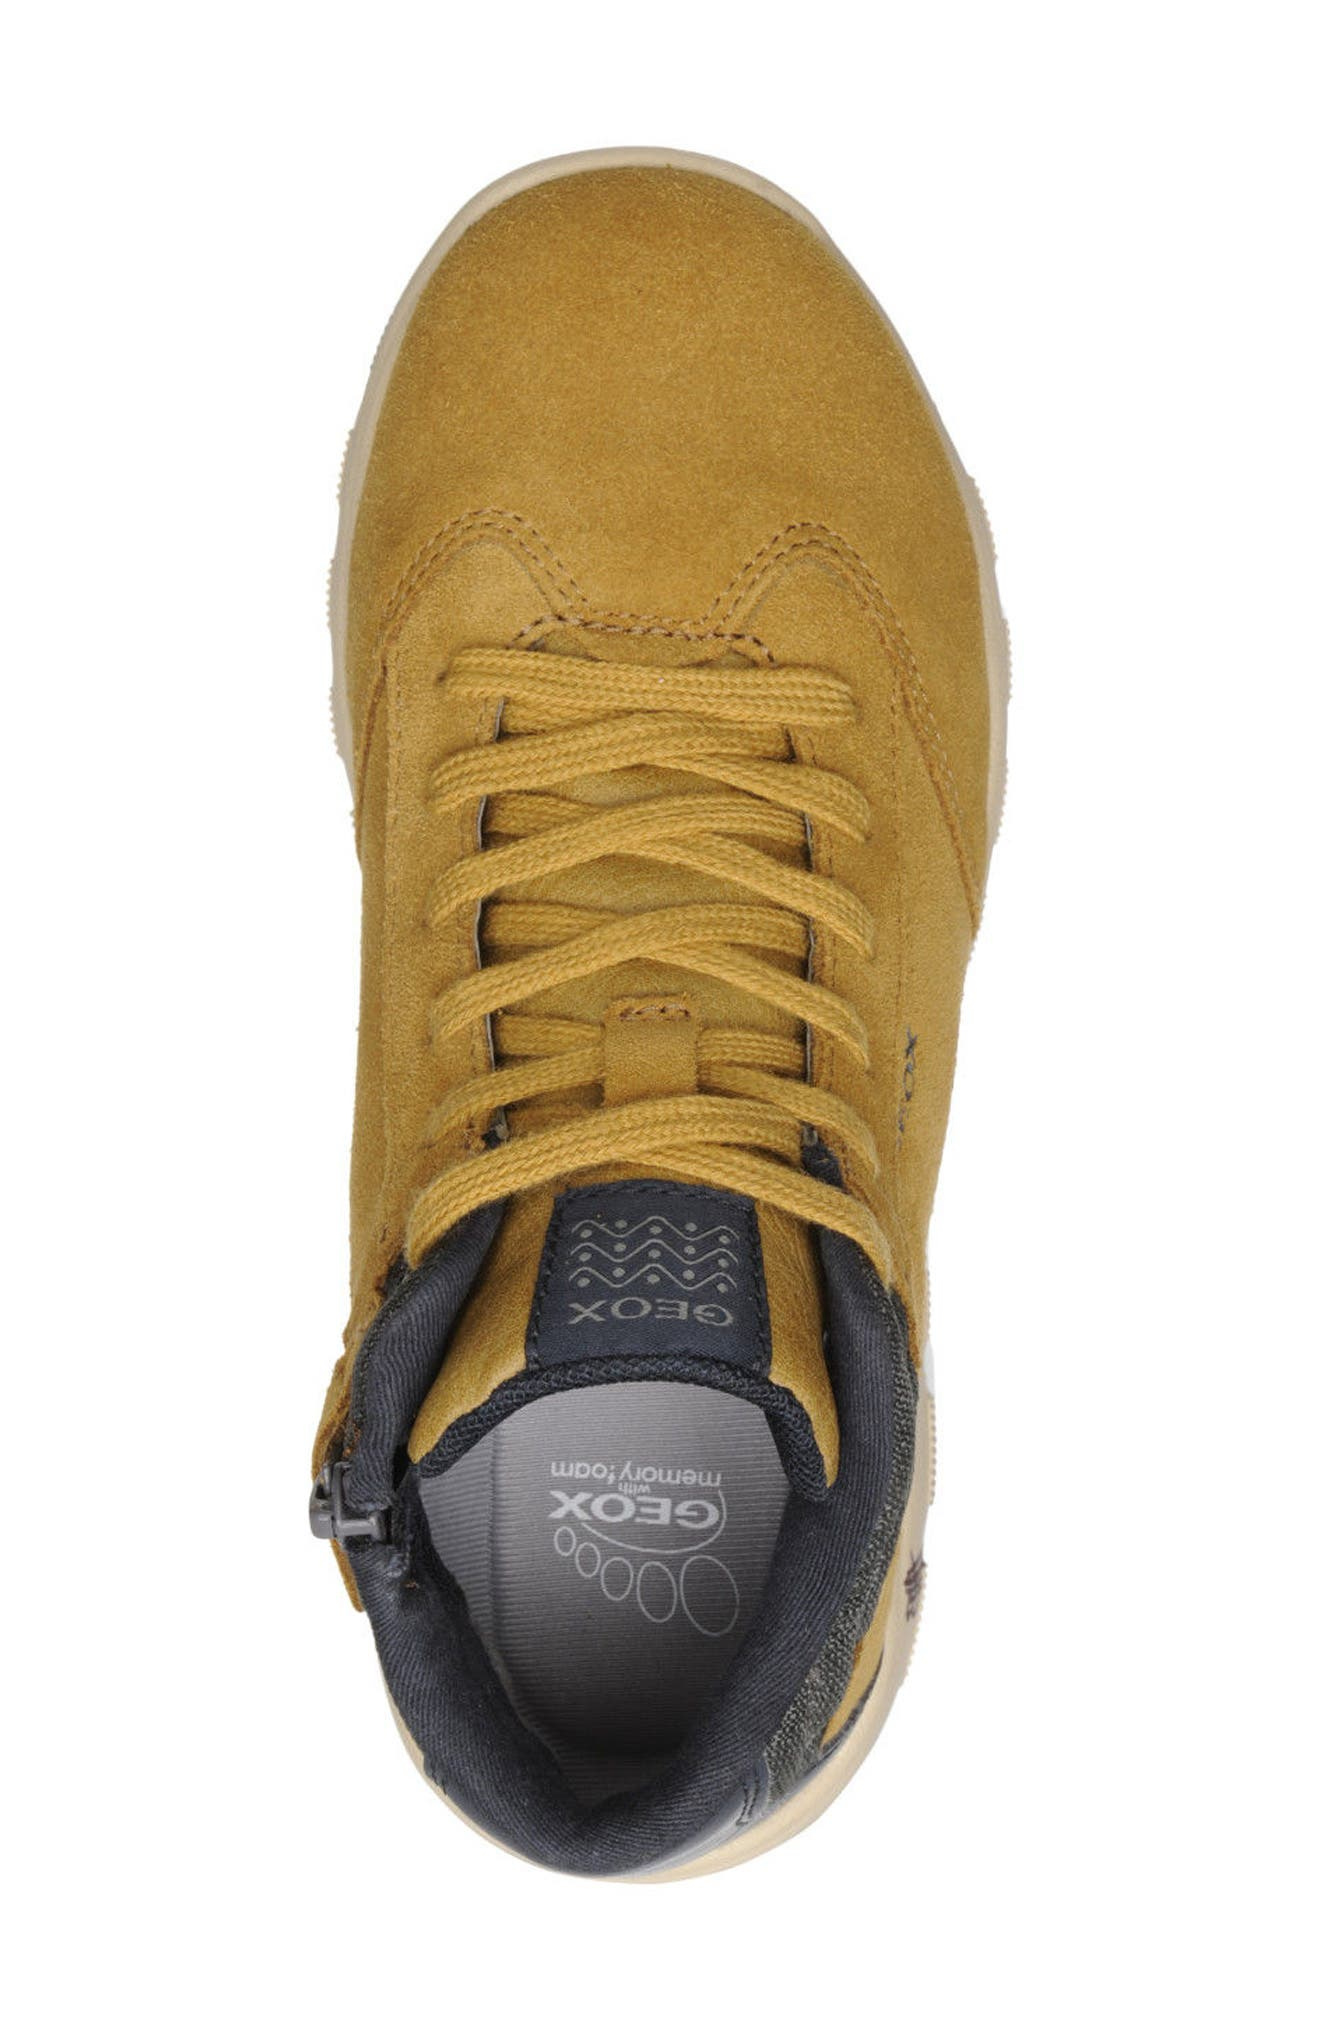 Xunday Mid Top Sneaker,                             Alternate thumbnail 4, color,                             020